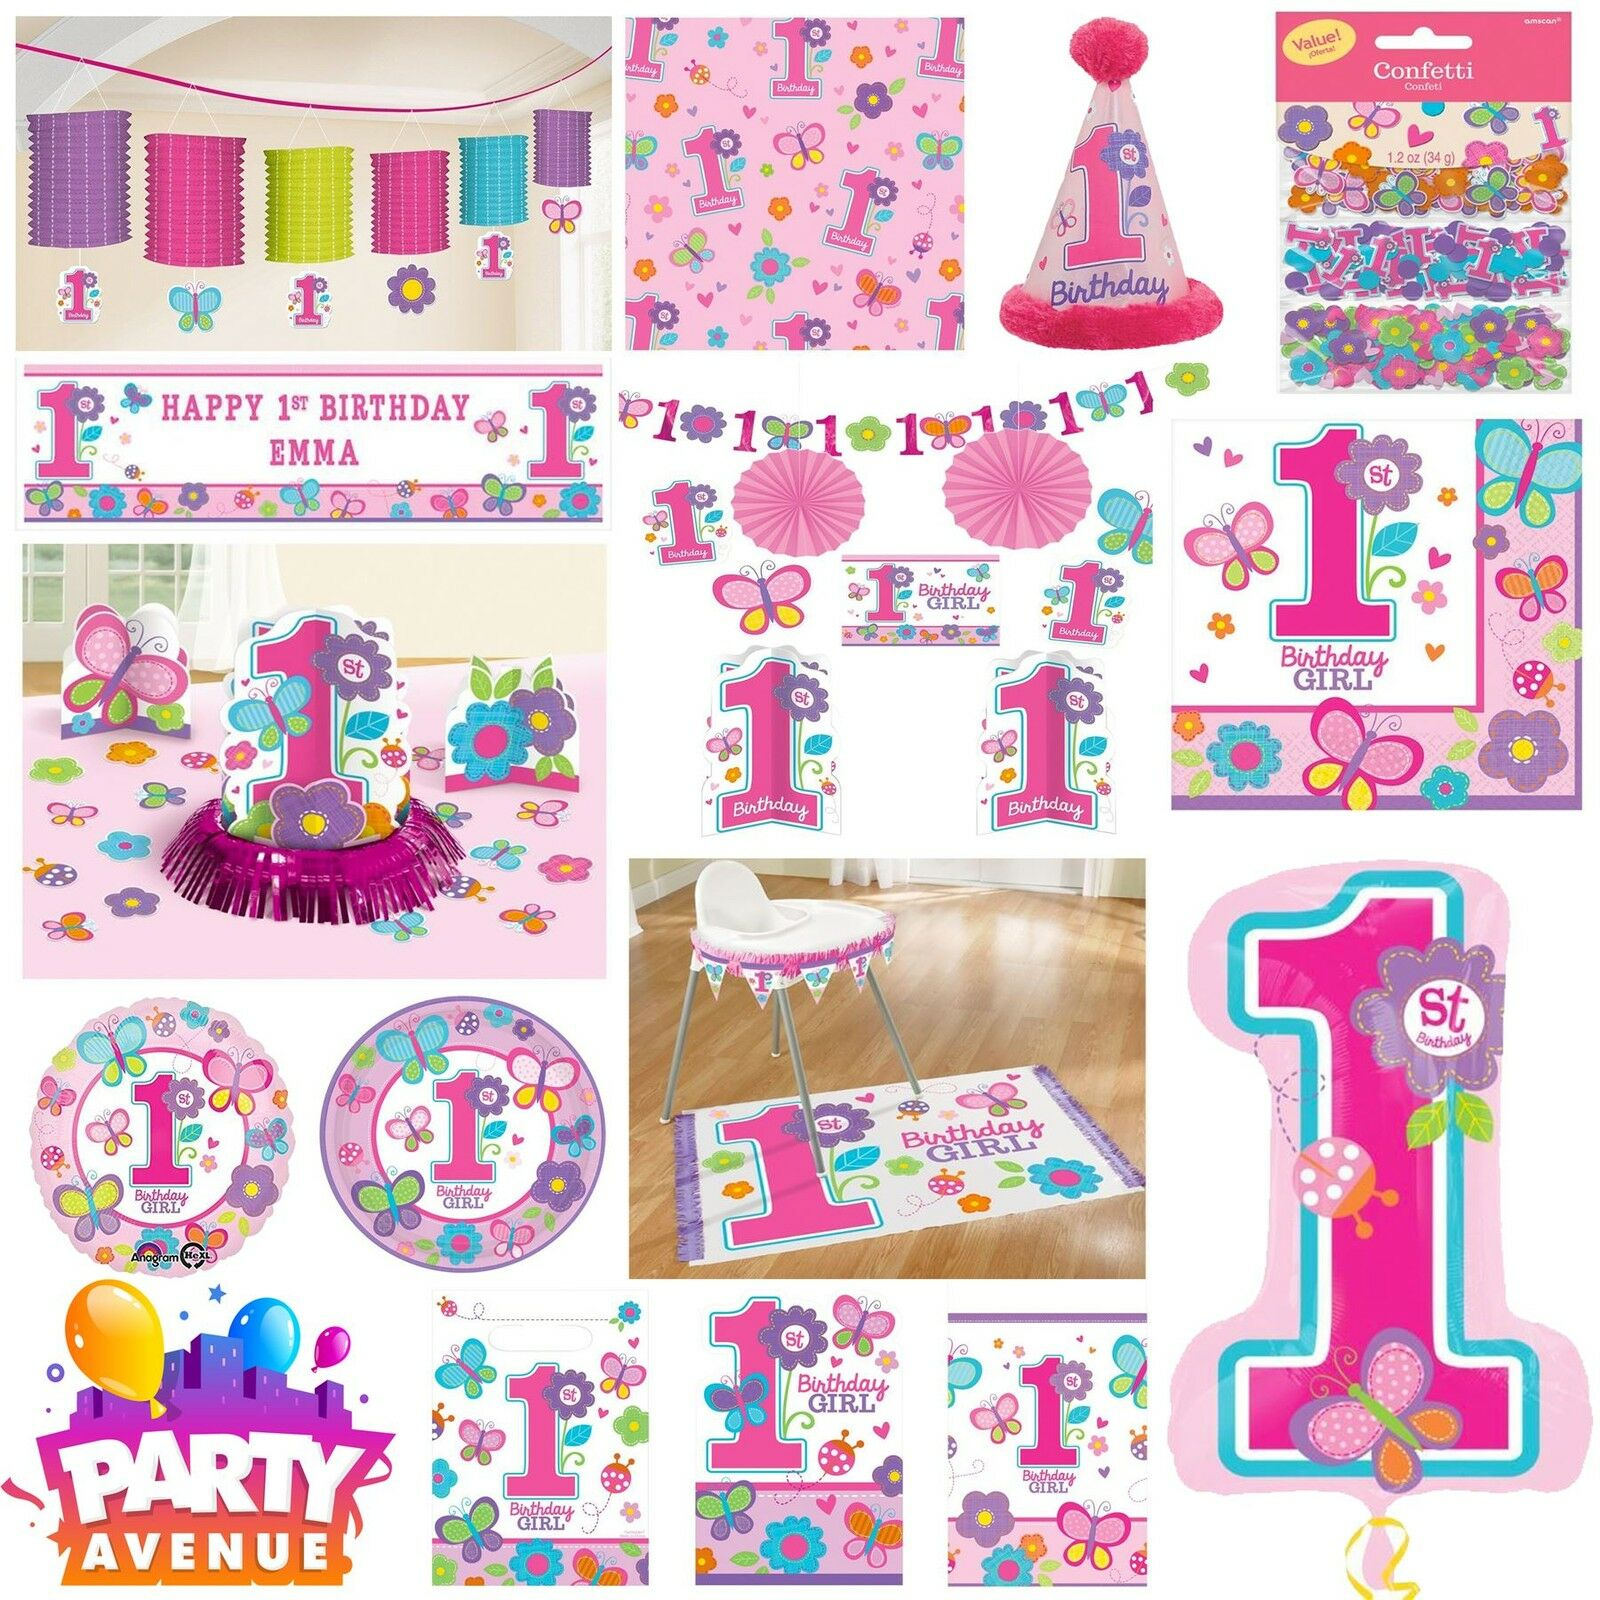 Sweet birthday girl party baby 1st birthday decorations for Baby girl birthday decoration pictures